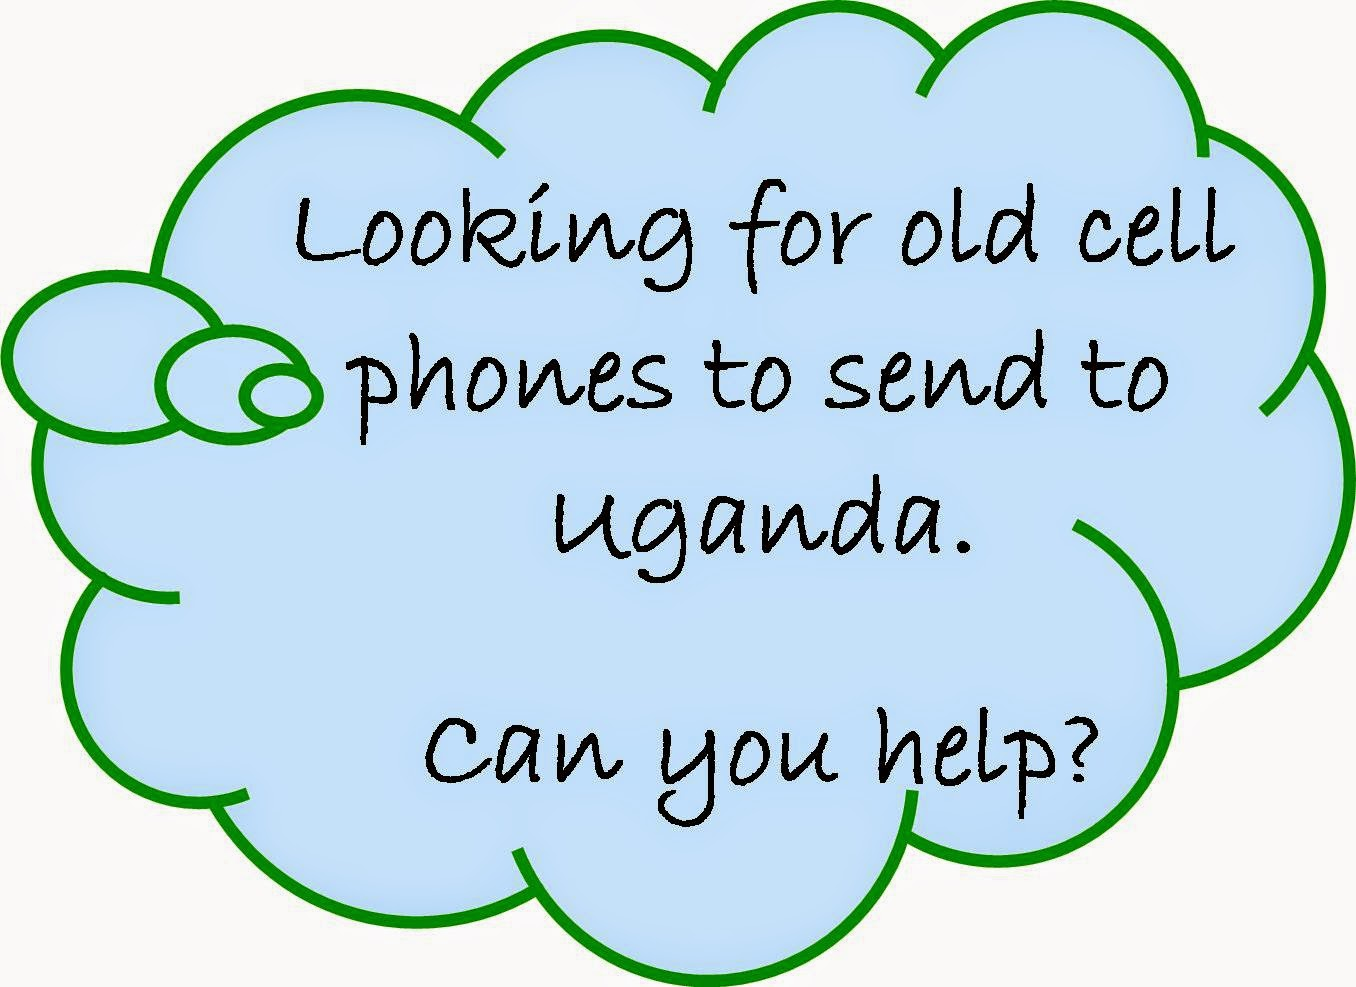 Old cell phones, Uganda, phones